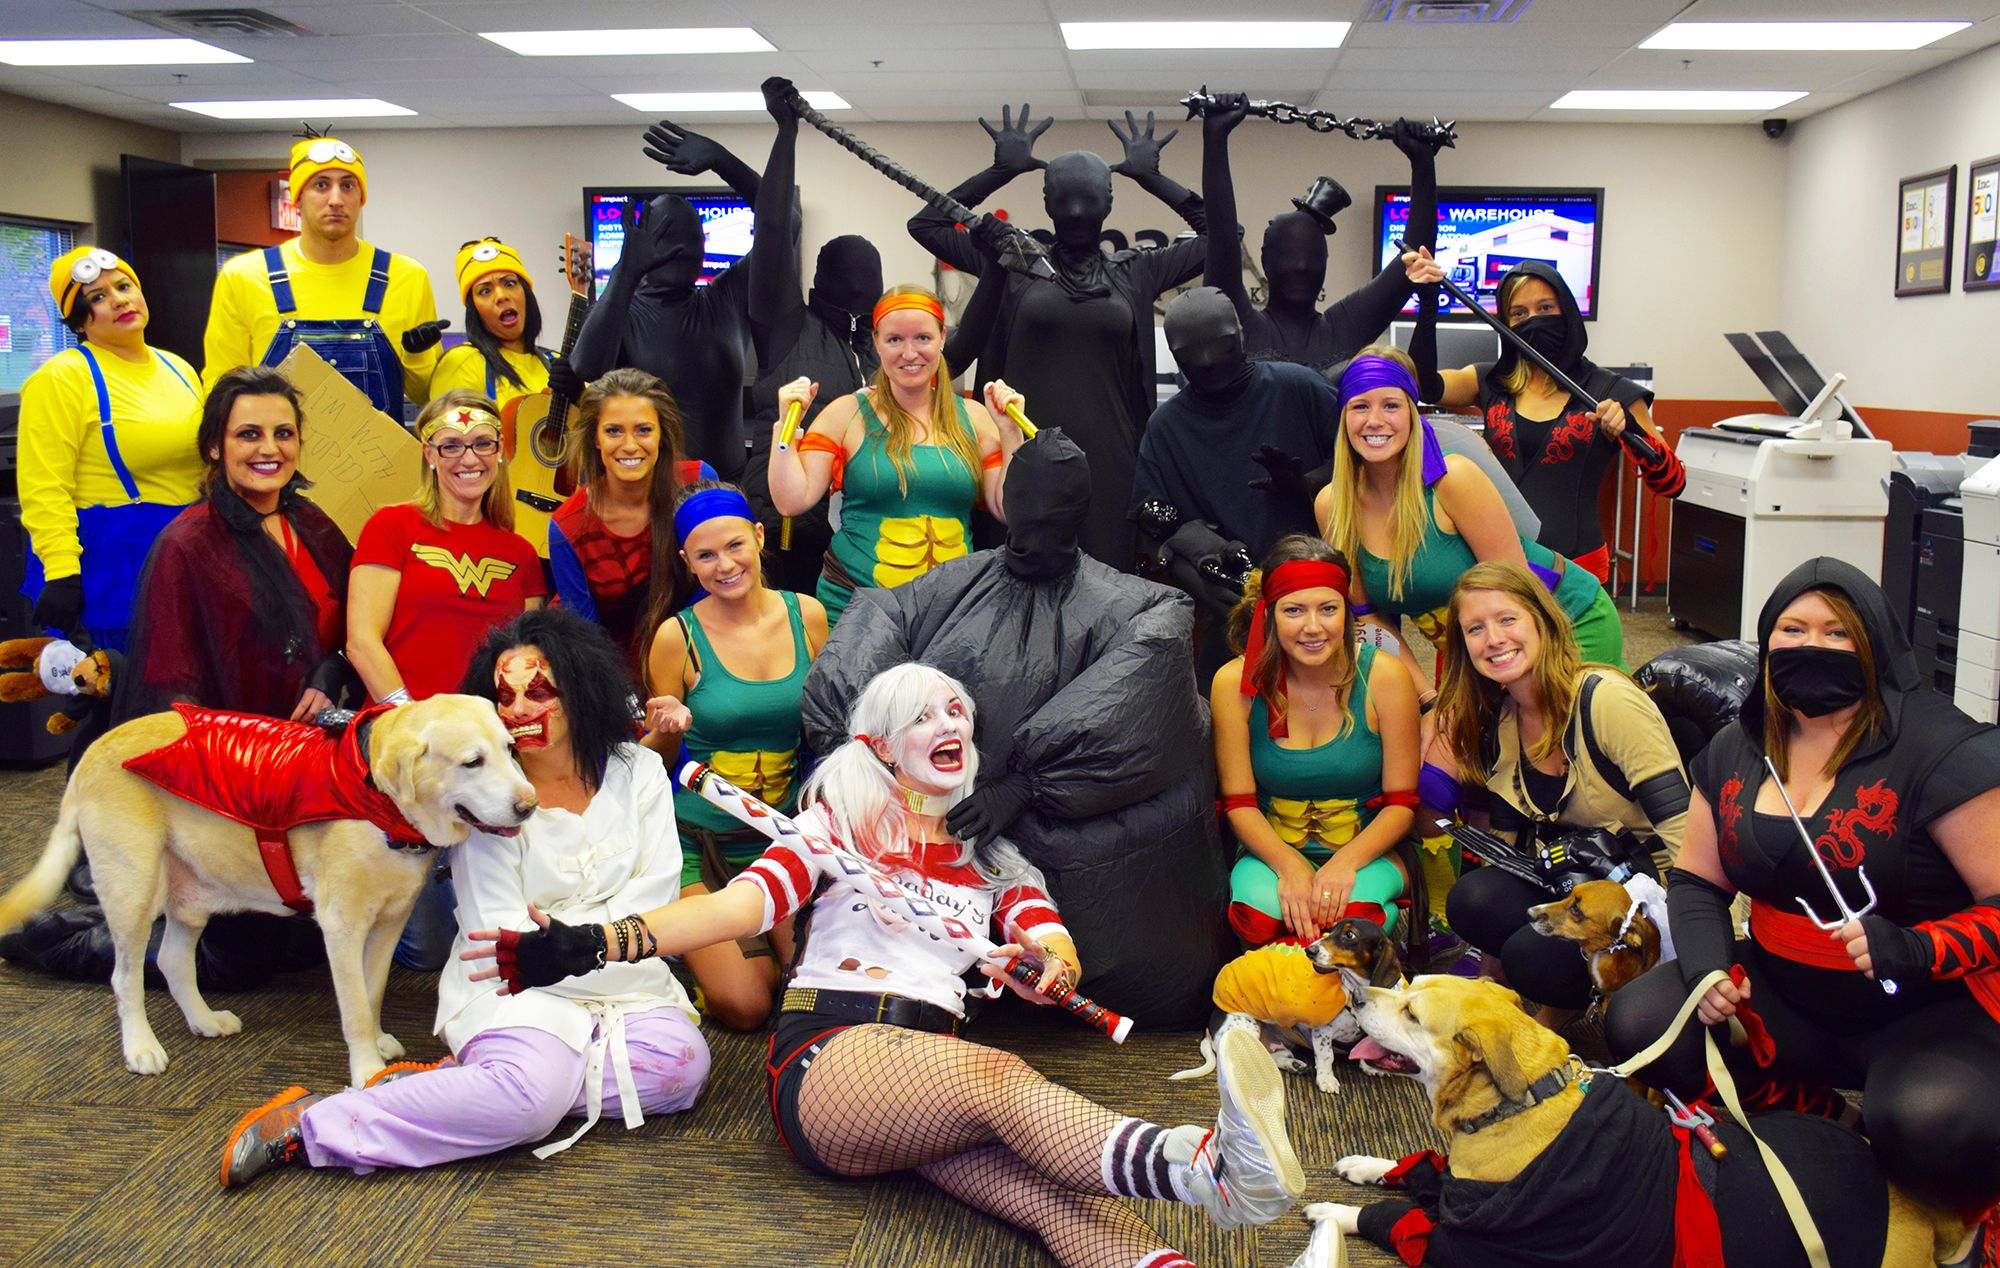 Halloween Contest Ideas For Work.2015 Office Halloween Costume Contest Ideas Workplace Culture Costume Contest Halloween Costume Contest Halloween Costumes